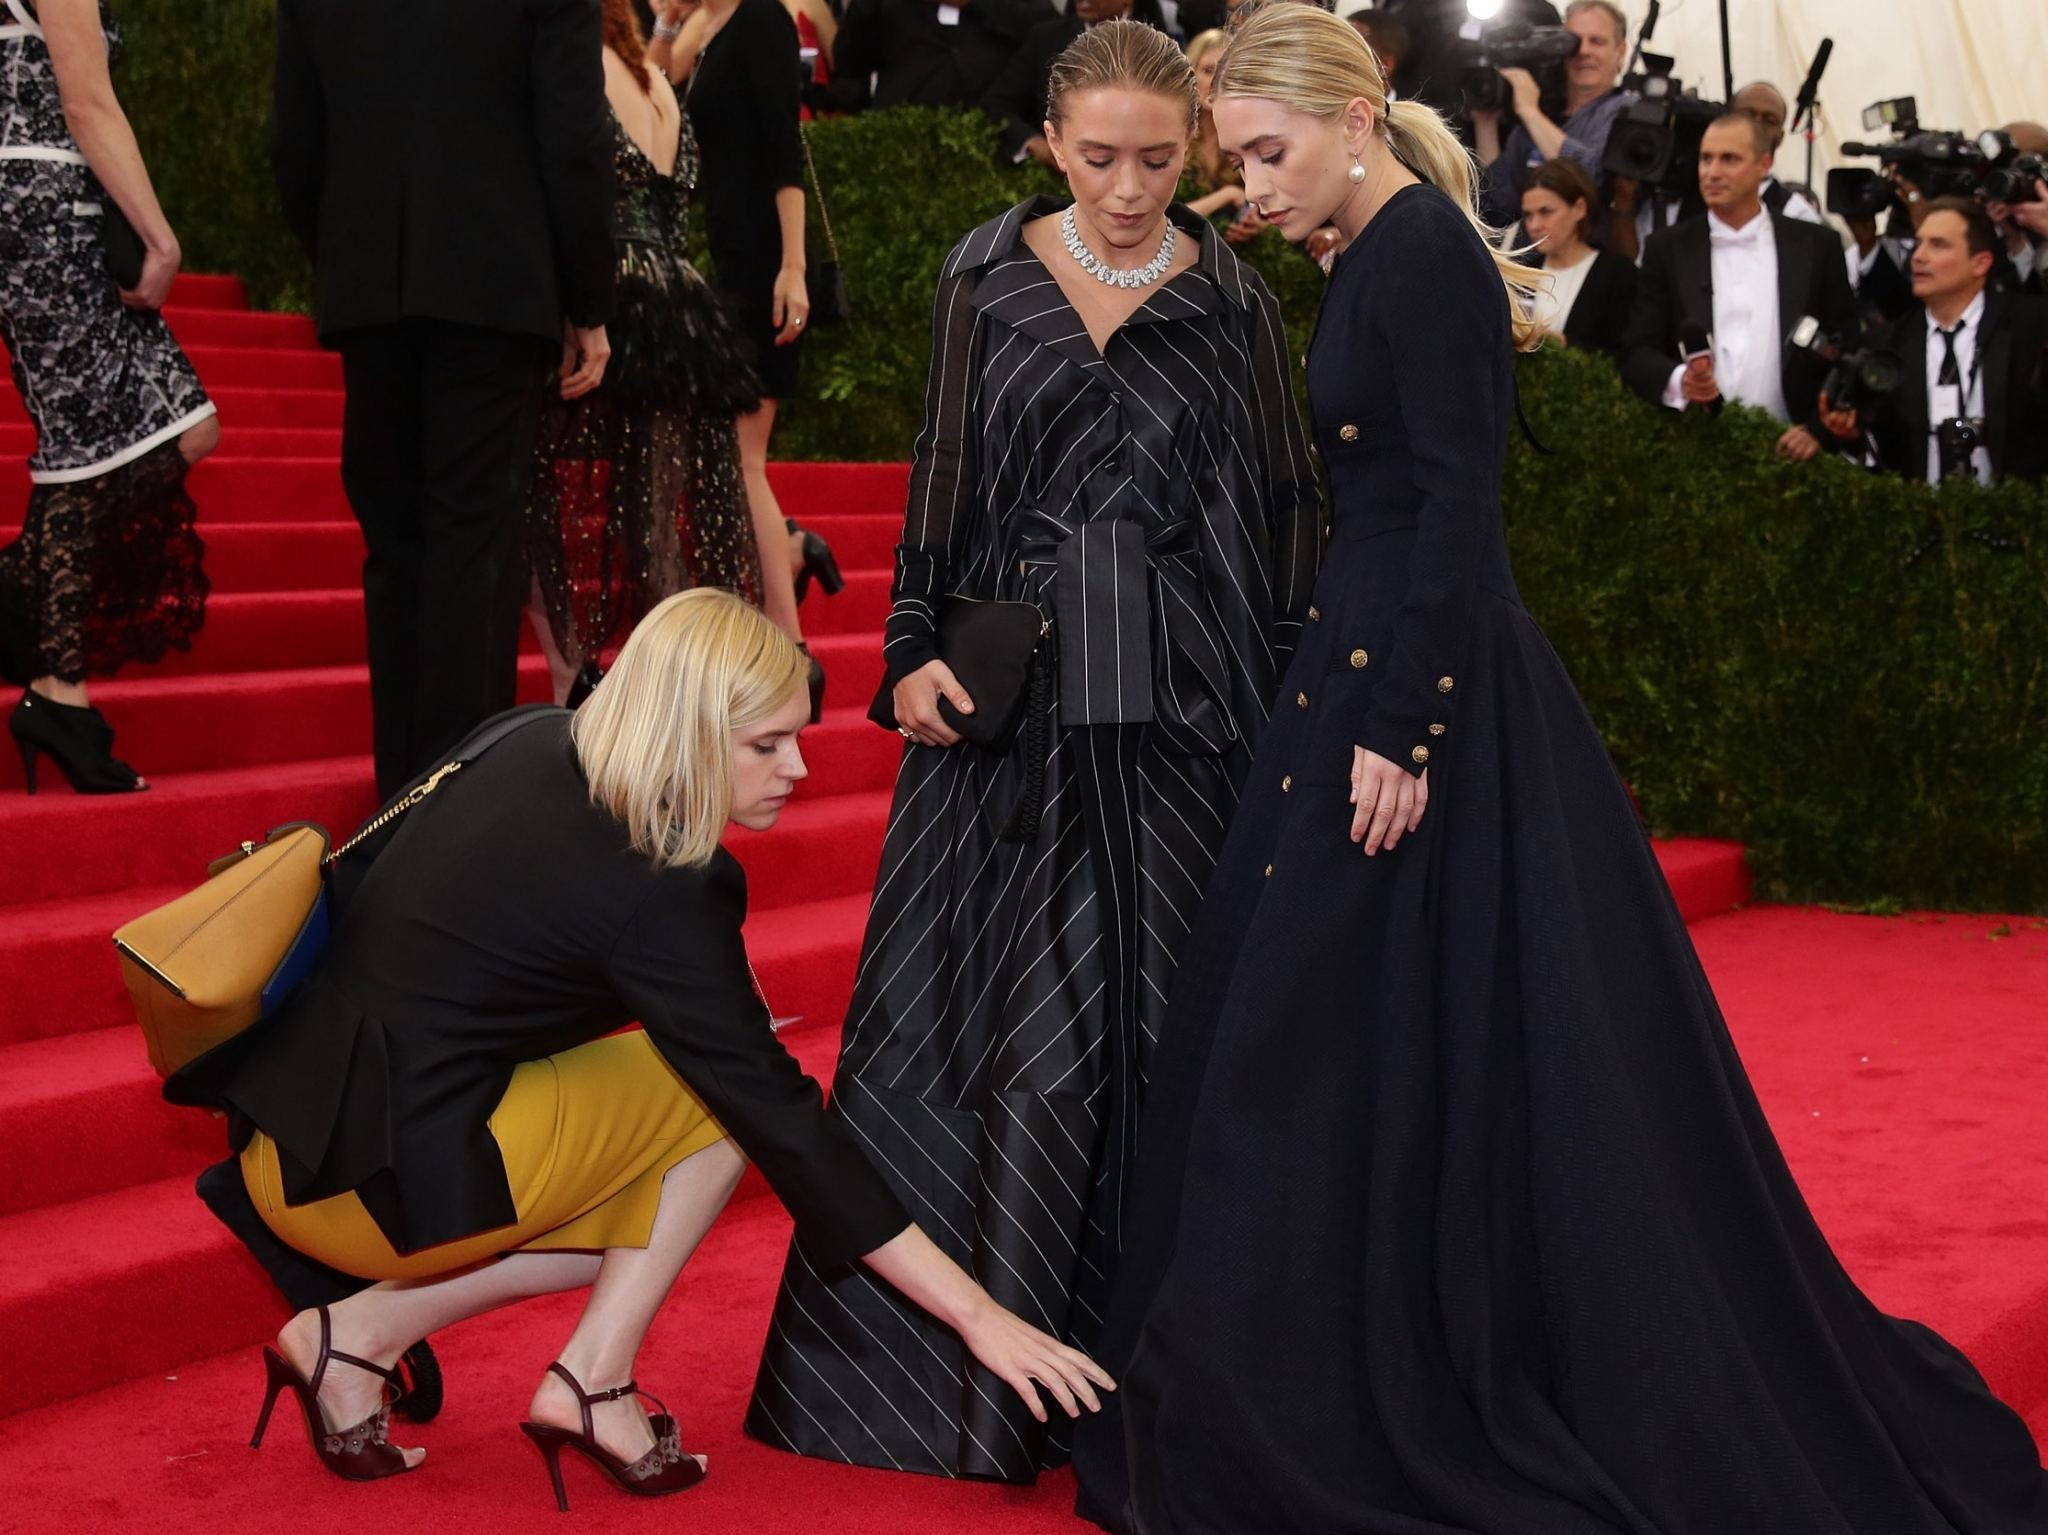 the-olsen-twins-are-being-sued-by-an-intern-accusing-their-company-of-overworking-interns-without-pay